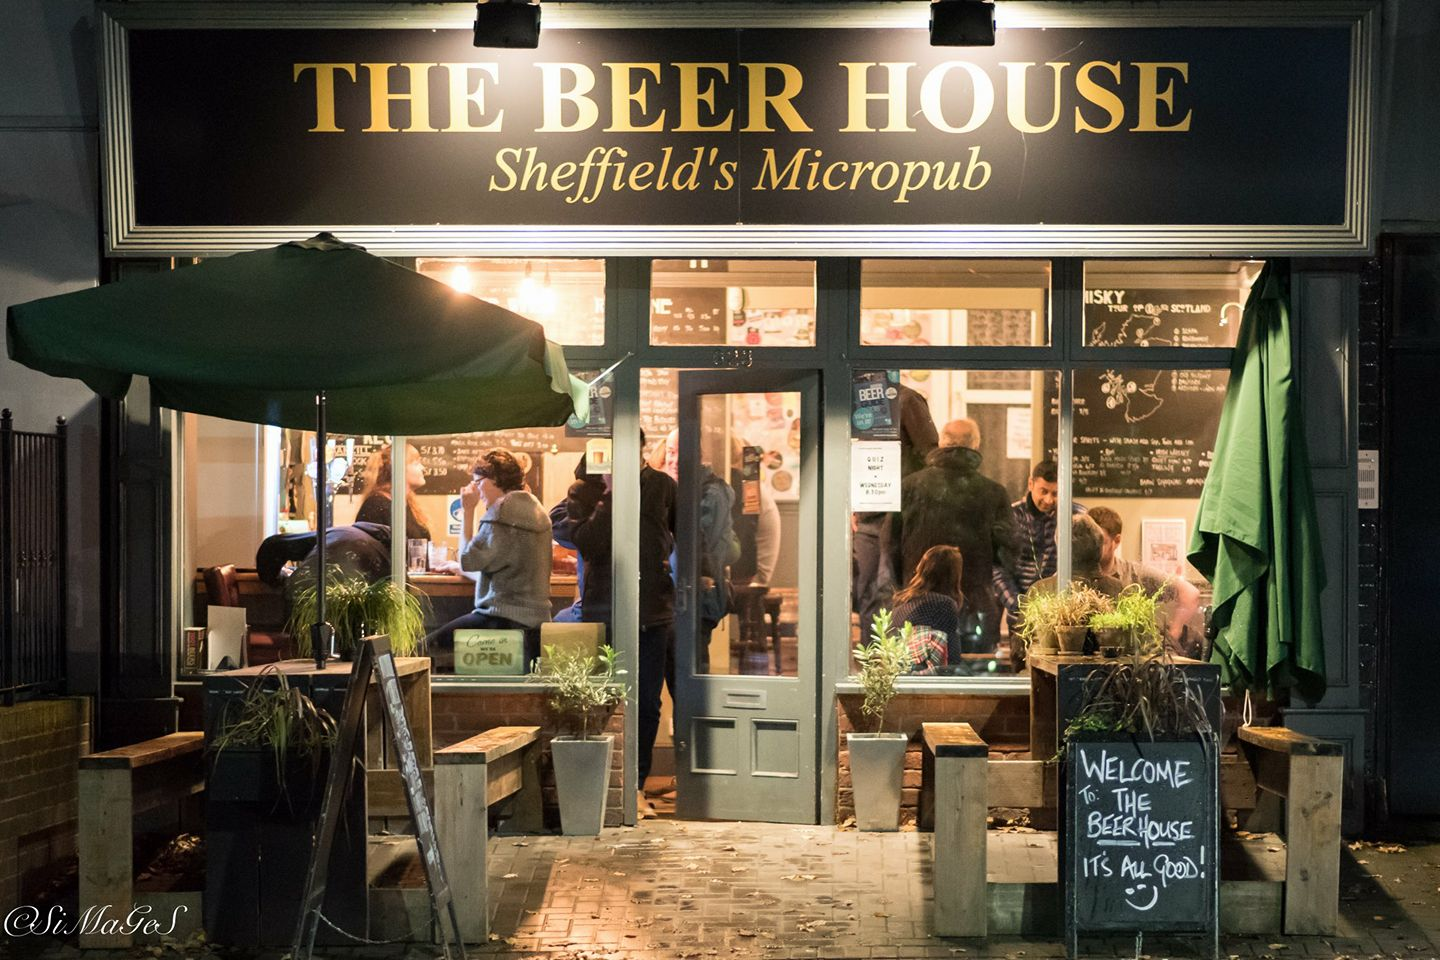 How a micropub transforms lockdown business into successful beer delivery model